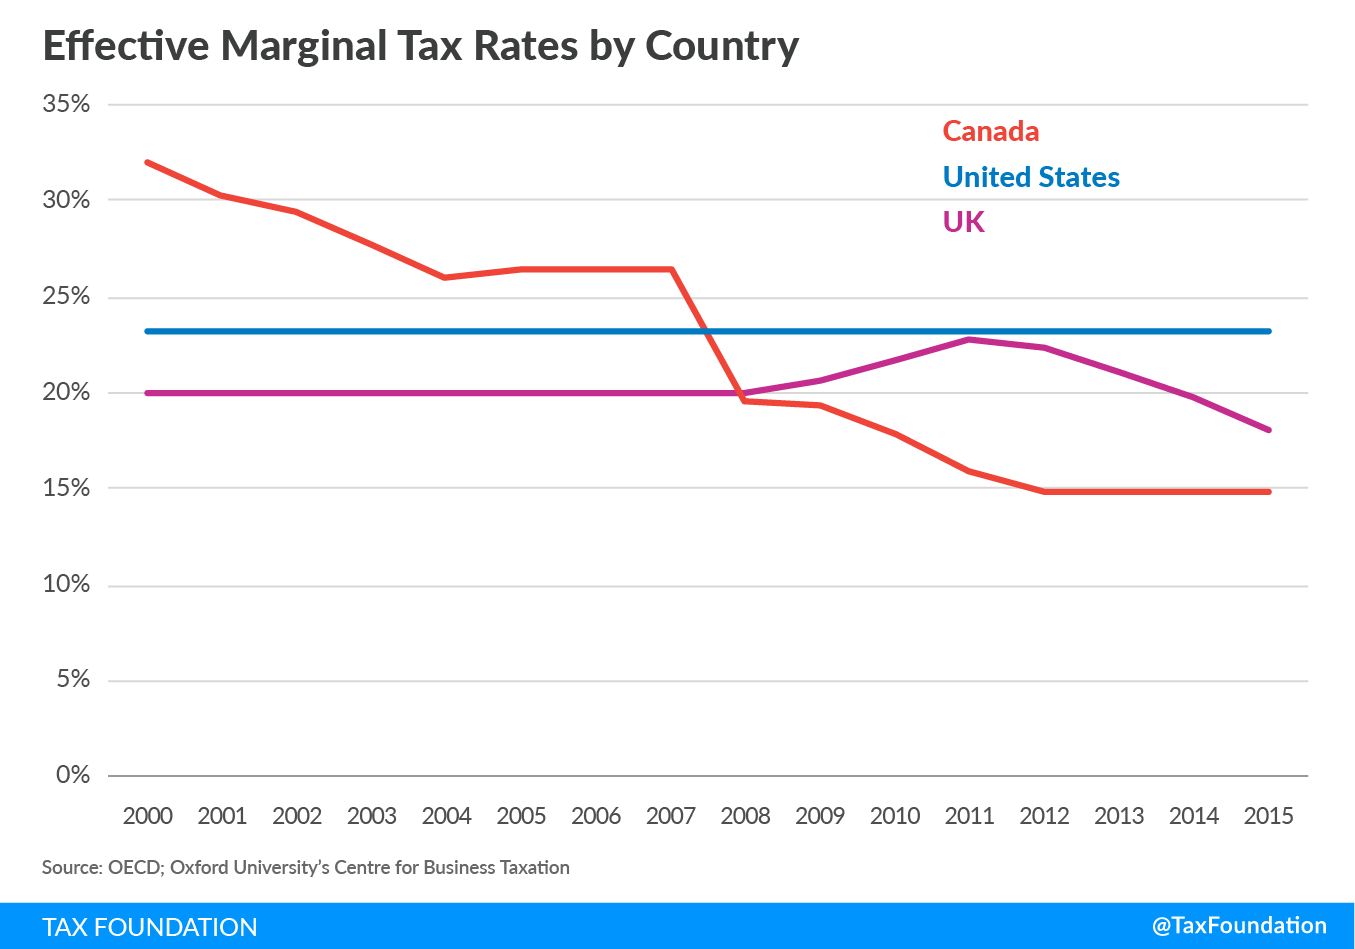 Effective Marginal Tax Rates - United States, Canada, UK